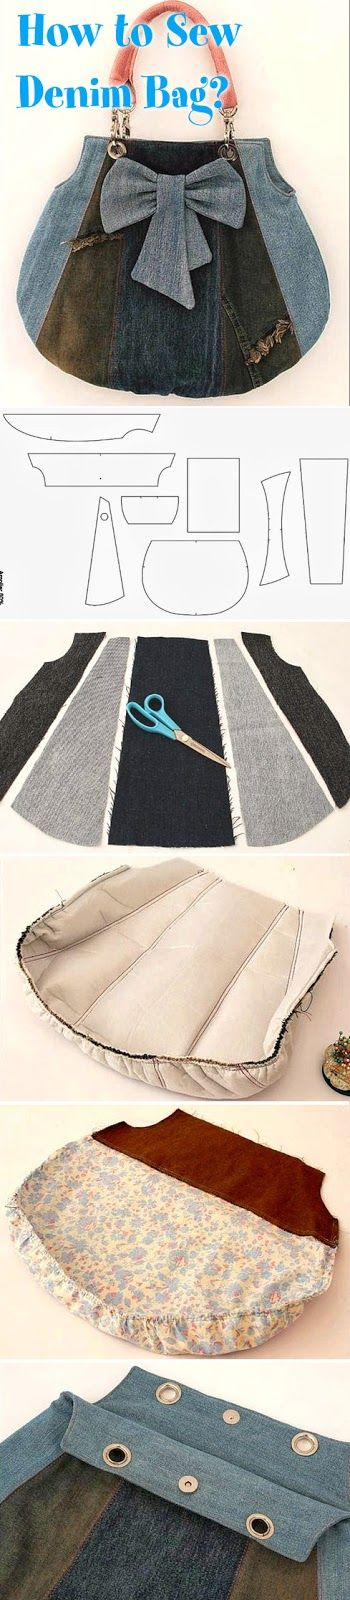 Шьем джинсовую сумку. Мастер-класс. We sew denim bag. DIY tutorial How to Sew Denim Bag? DIY tutorial www.handmadiya.co...